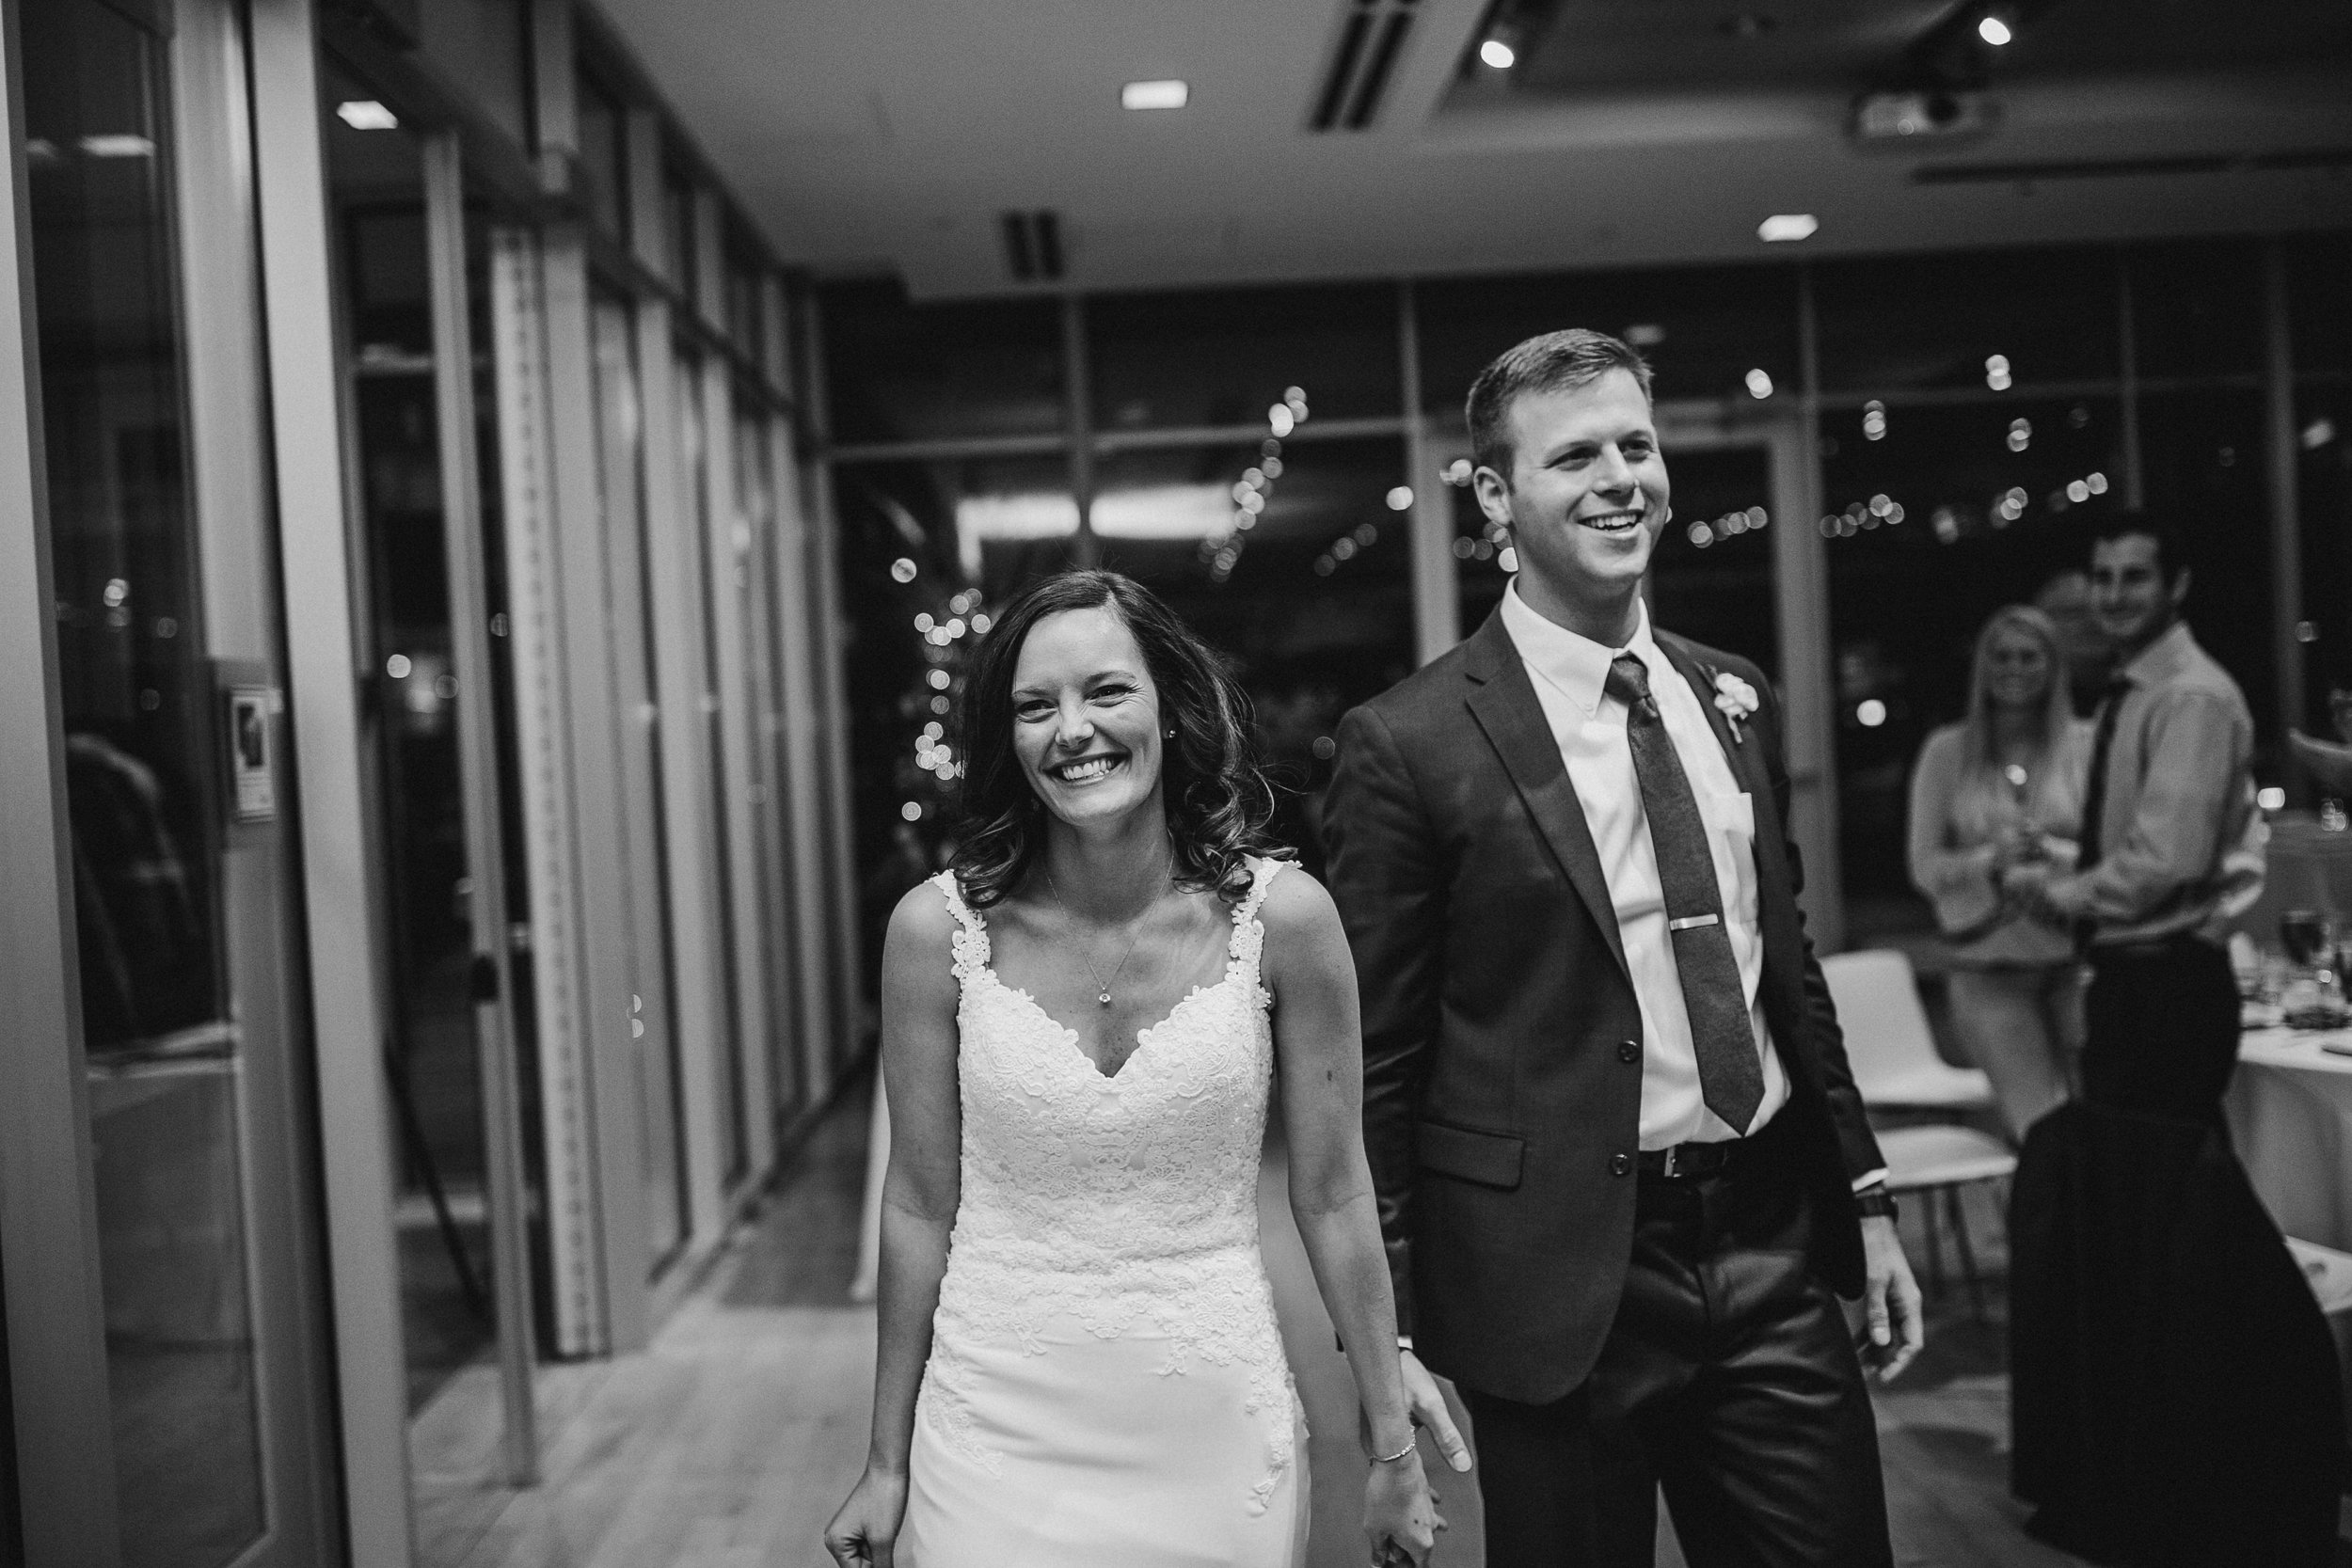 2018-1-Trisha-Craig-Reception-Grand-Rapids-Wedding-Michigan-Wedding-Photographer-99.jpg